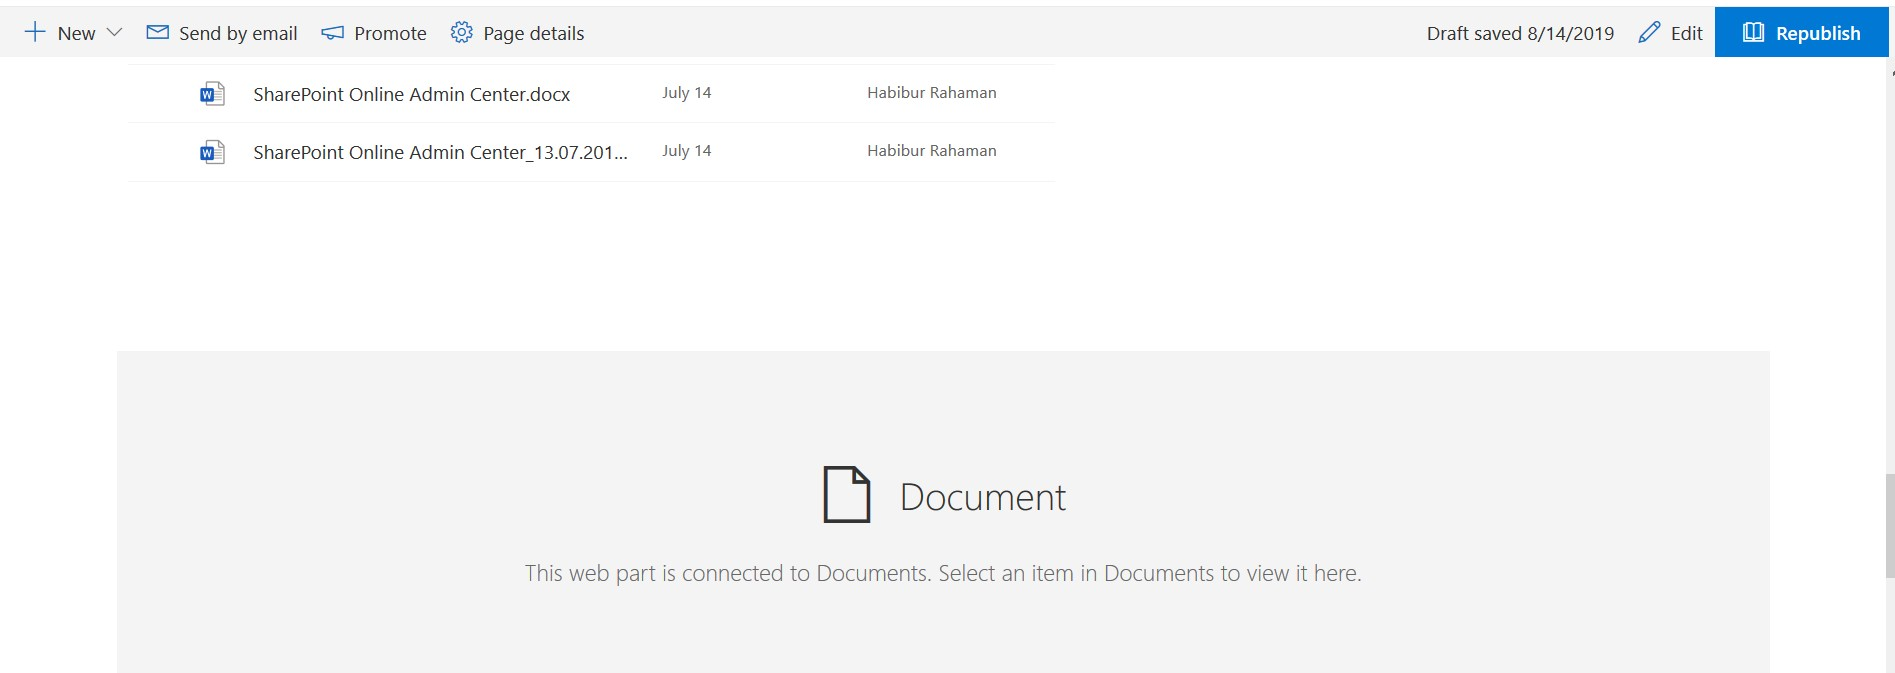 Configure file viewer web part in SharePoint Online